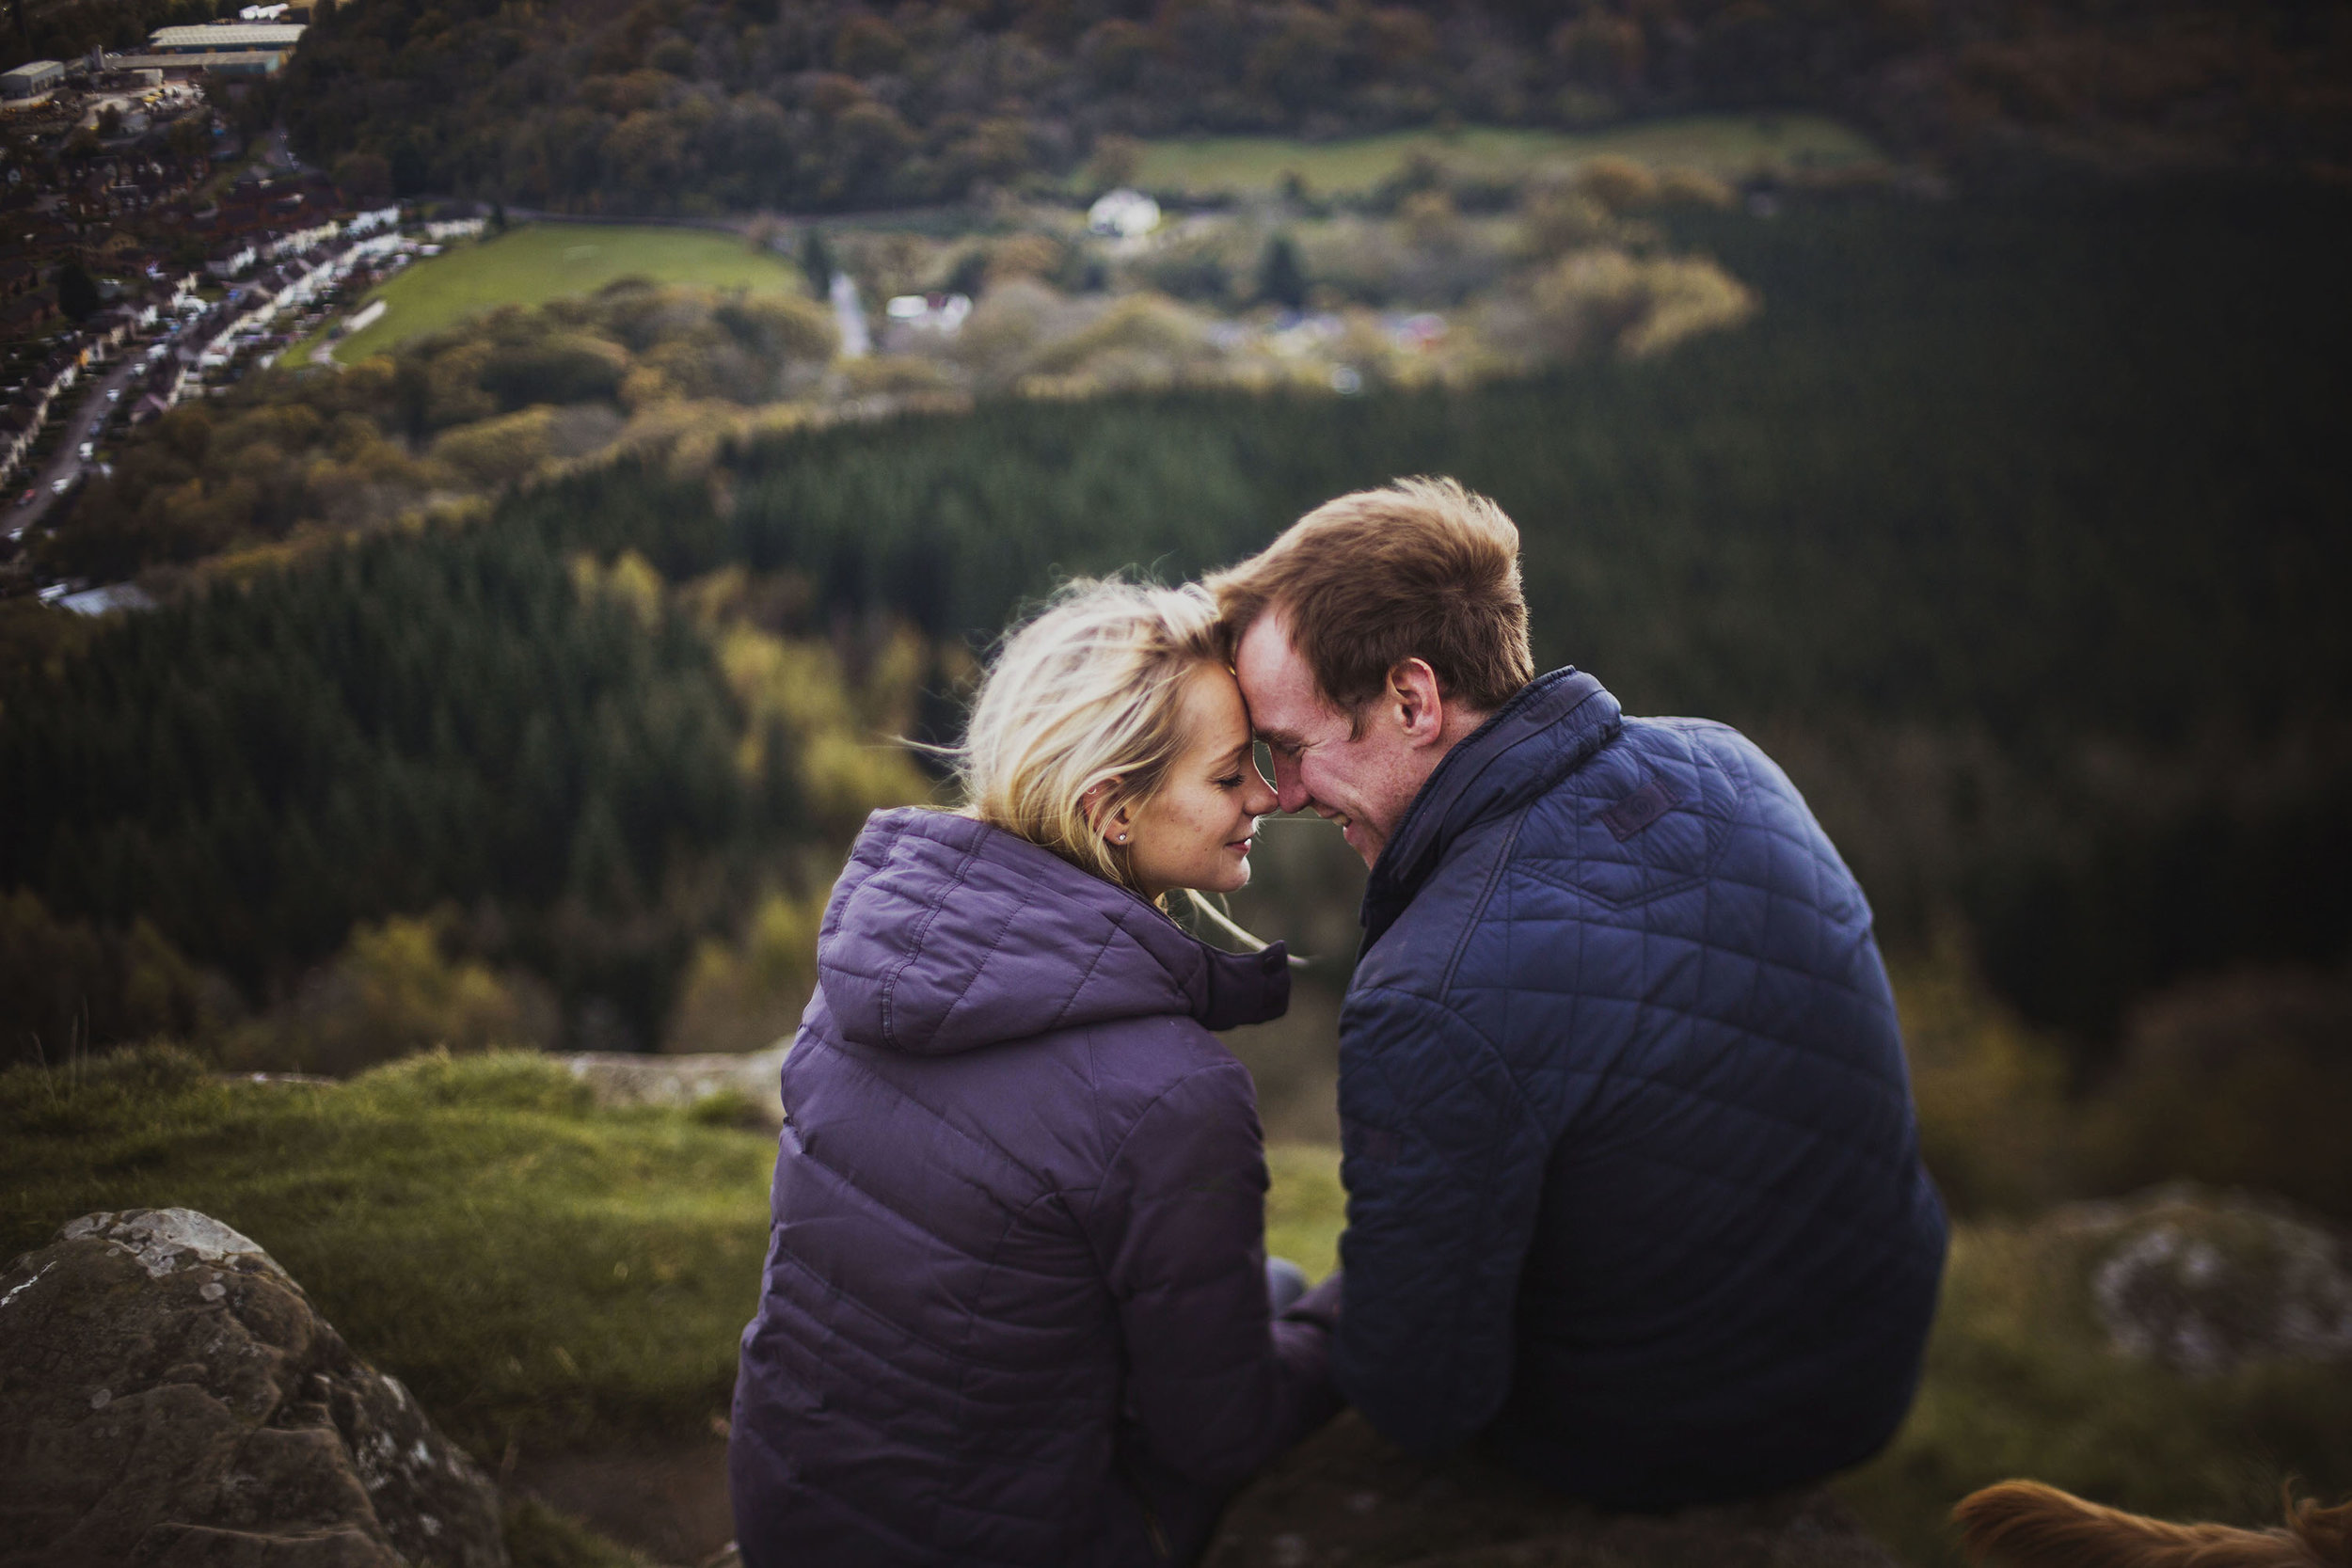 Chris_and_Lucy_Prewed_42.jpg